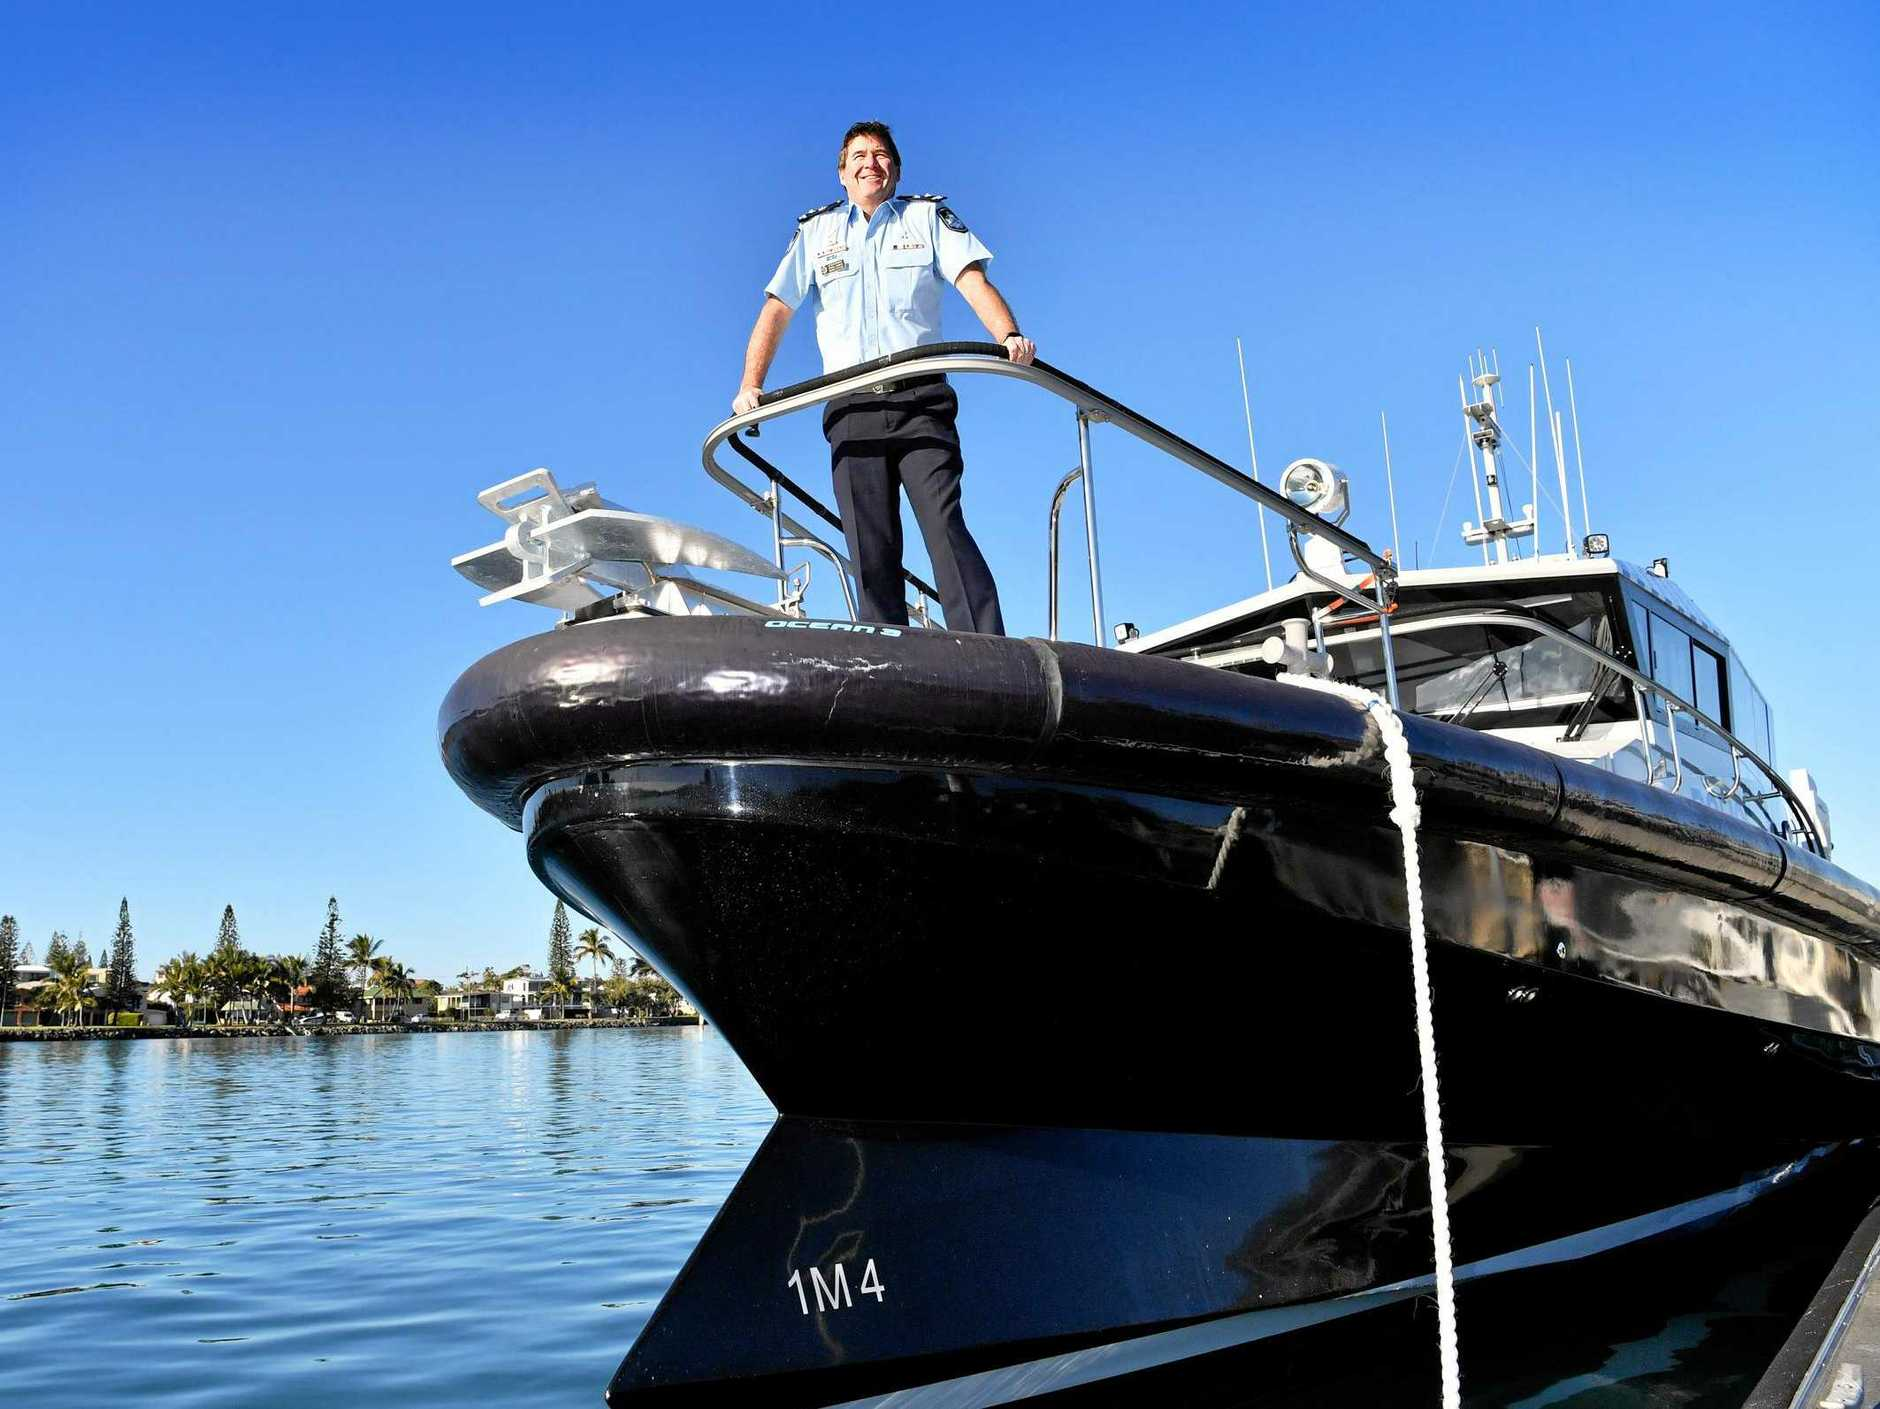 Sunshine Coast Superintendent Darryl Johnson with the new state-of-the-art Water Police vessel at Mooloolaba.